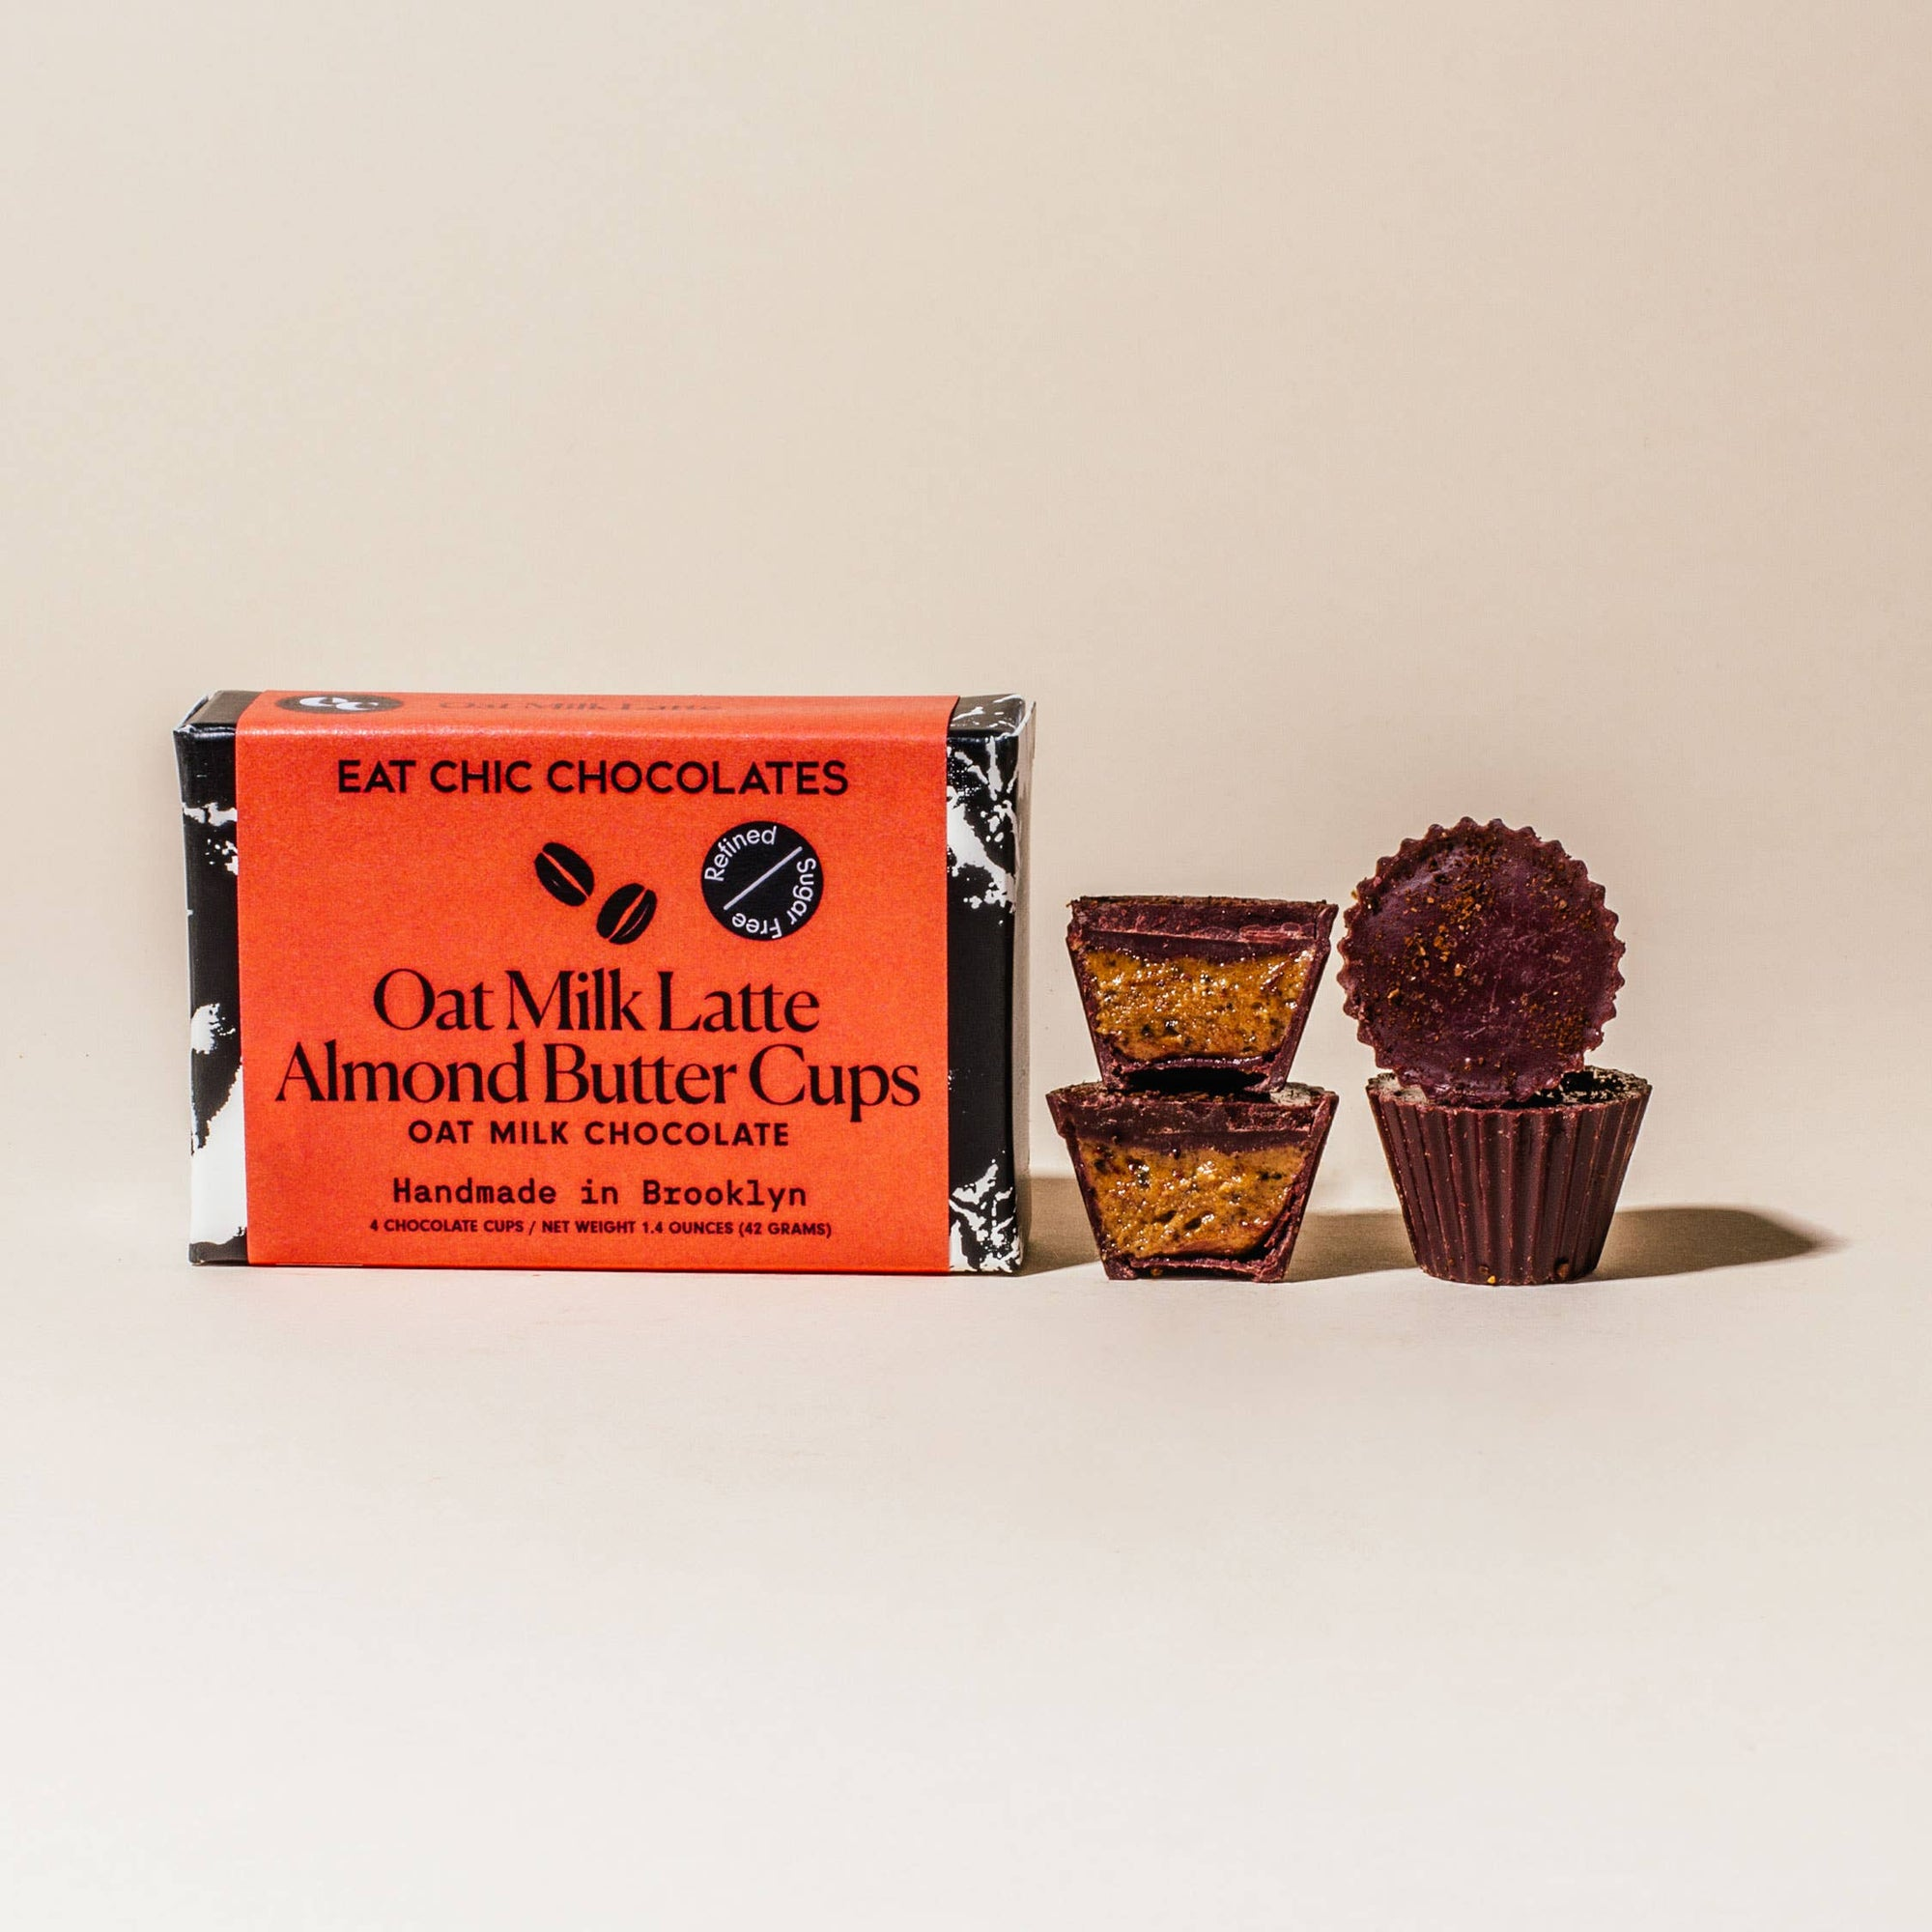 Eat Chic Chocolates: Oat Milk Chocolate Latte Almond Butter Cups - Pack of 4